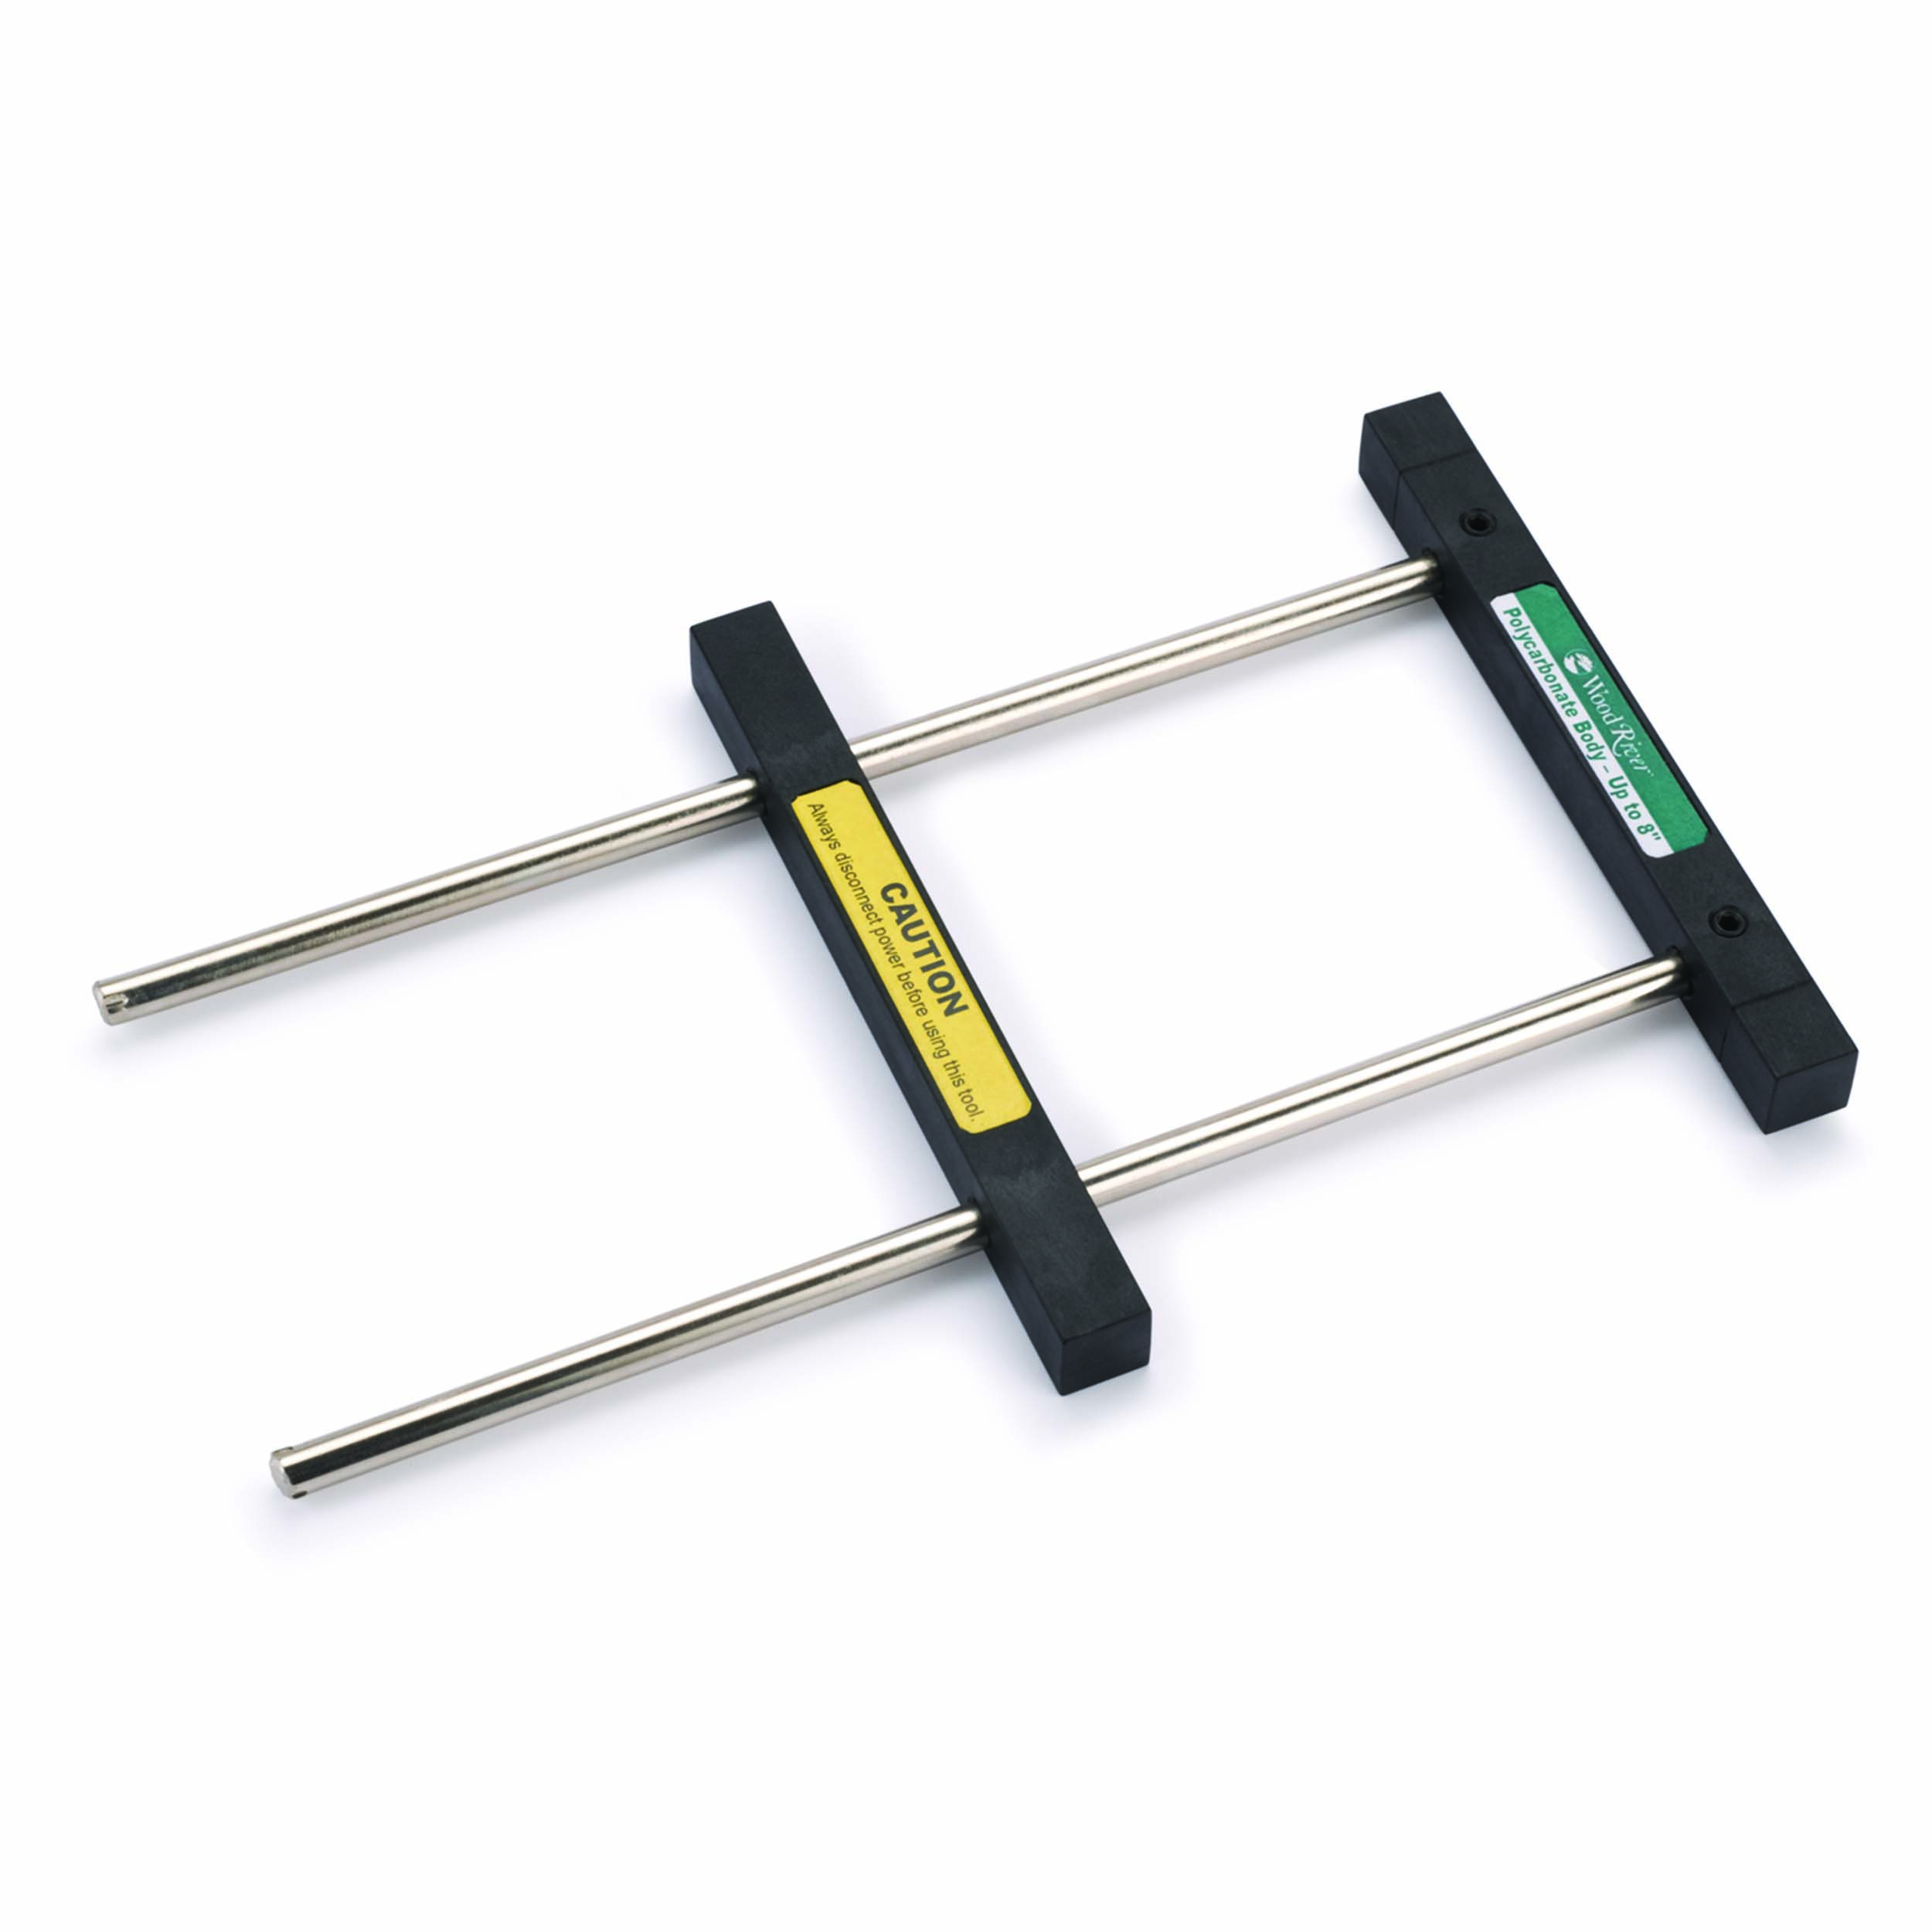 Polycarbonate Body 8-Inch Jointer Knife Setting Jig